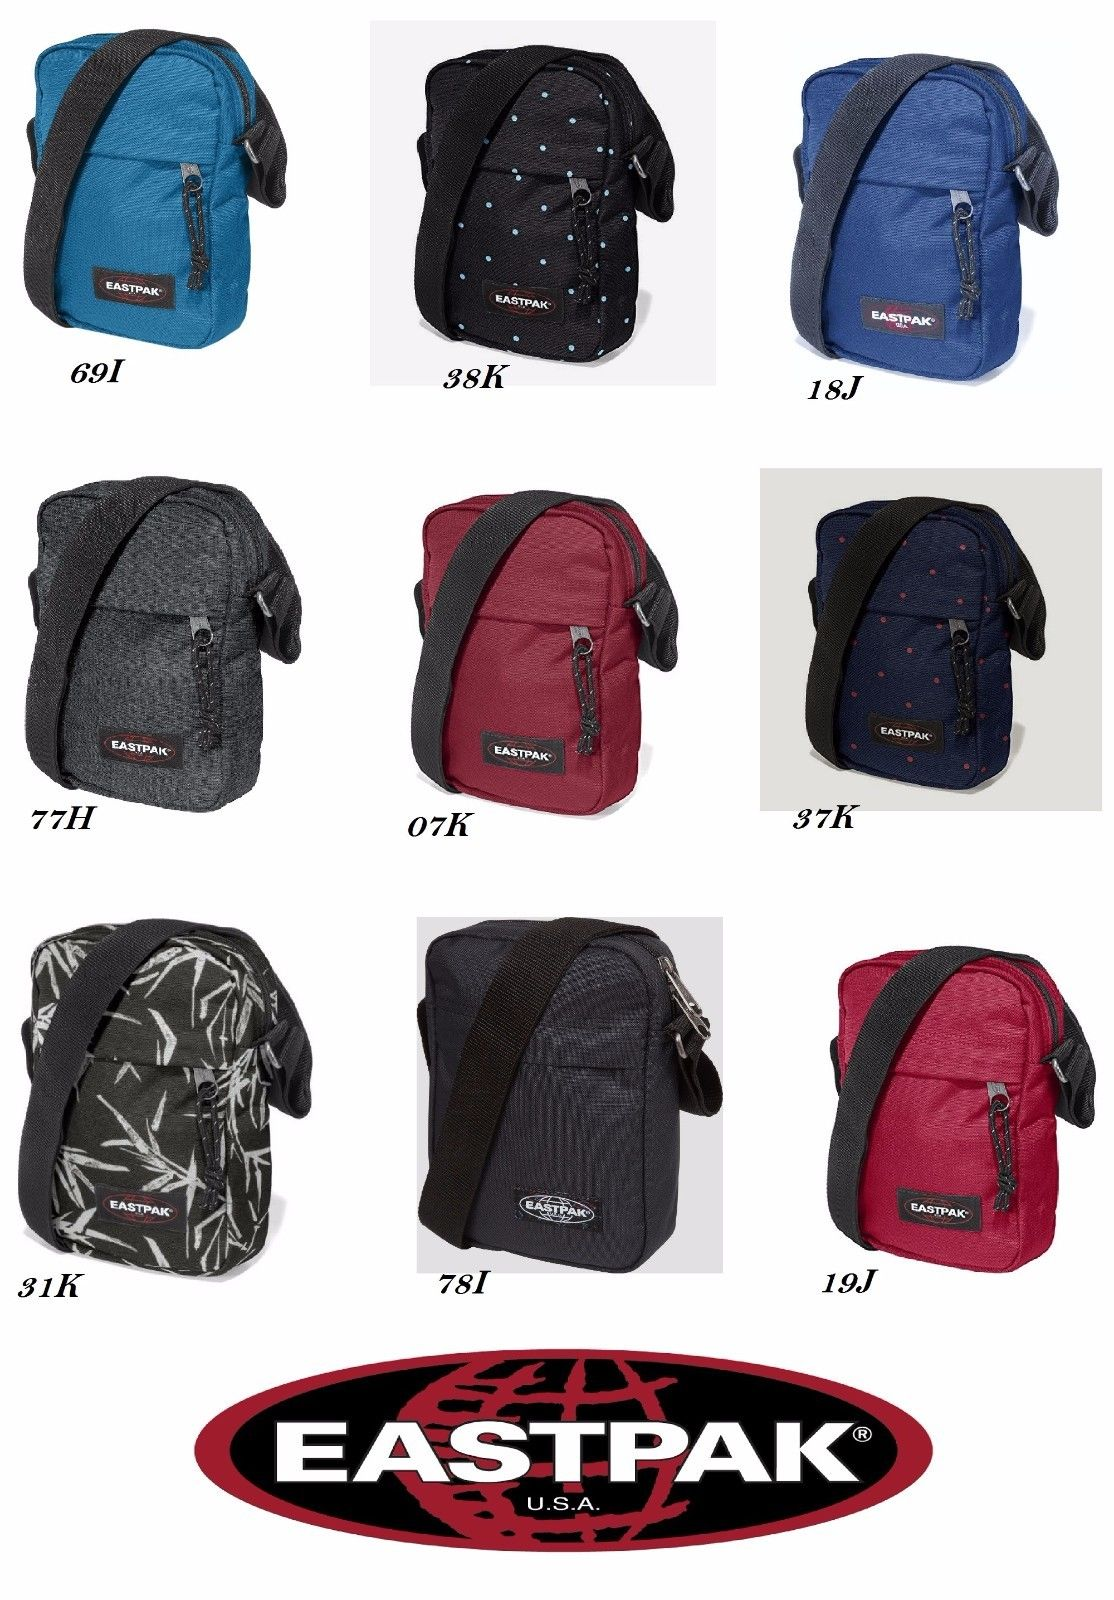 df14f87e93 Tracolla The One Eastpak Ek045 Portachiave Borsello Tempo Libero Unisex